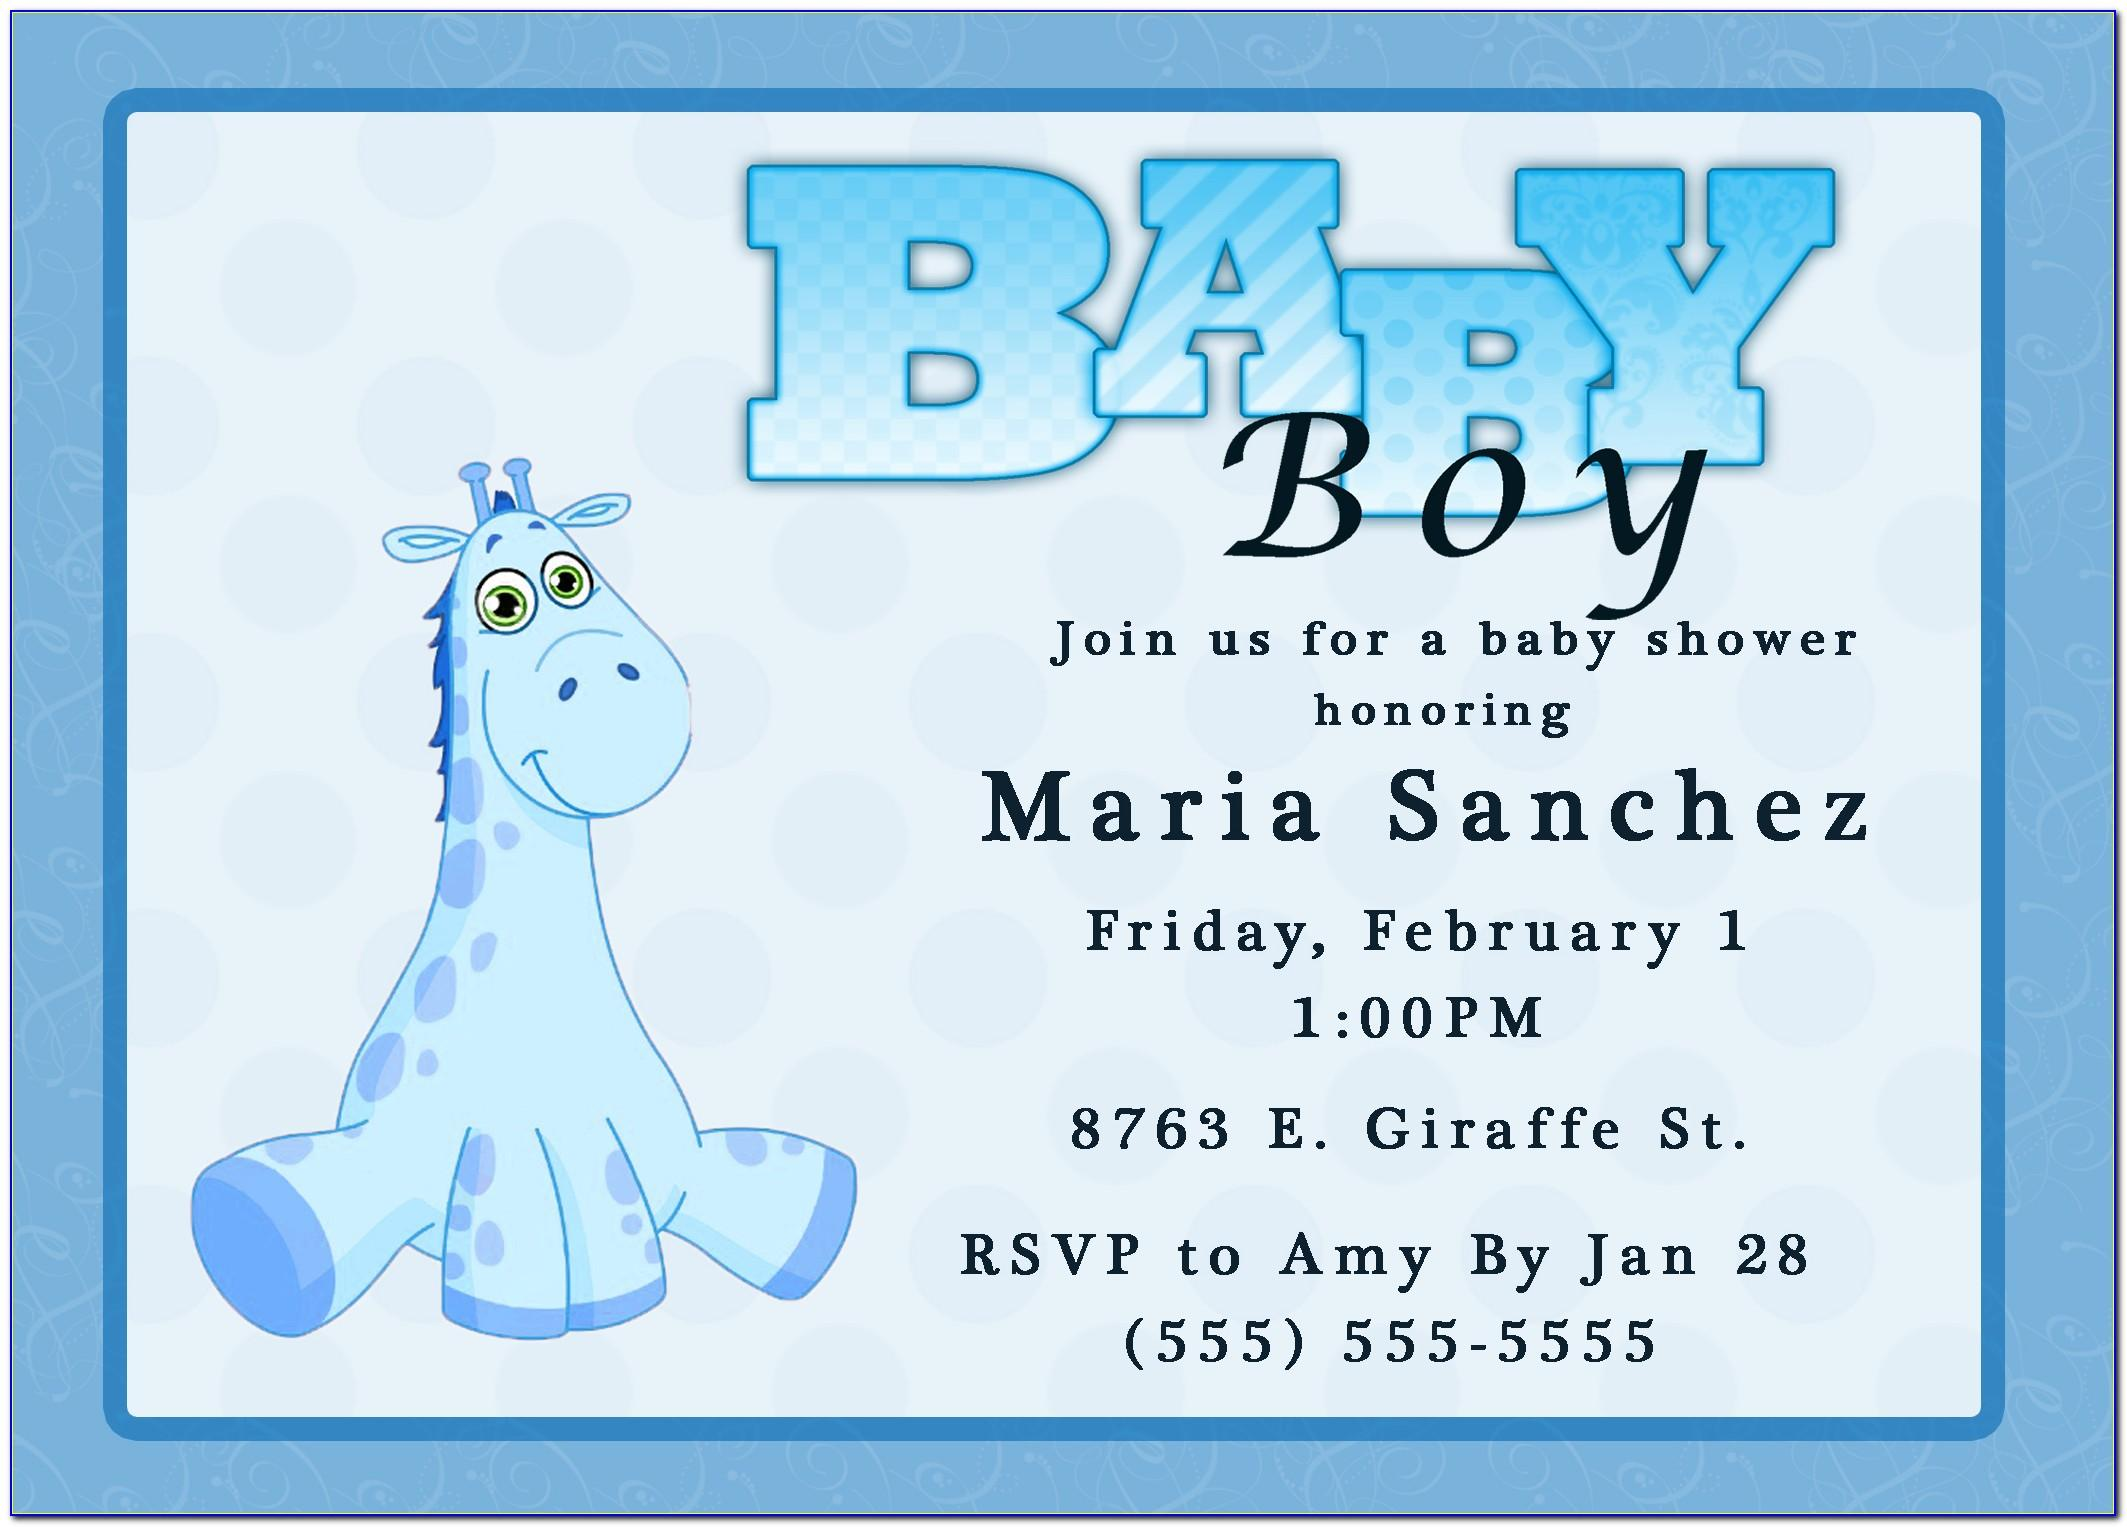 Baby Boy Shower Invitation Card Template Free Download